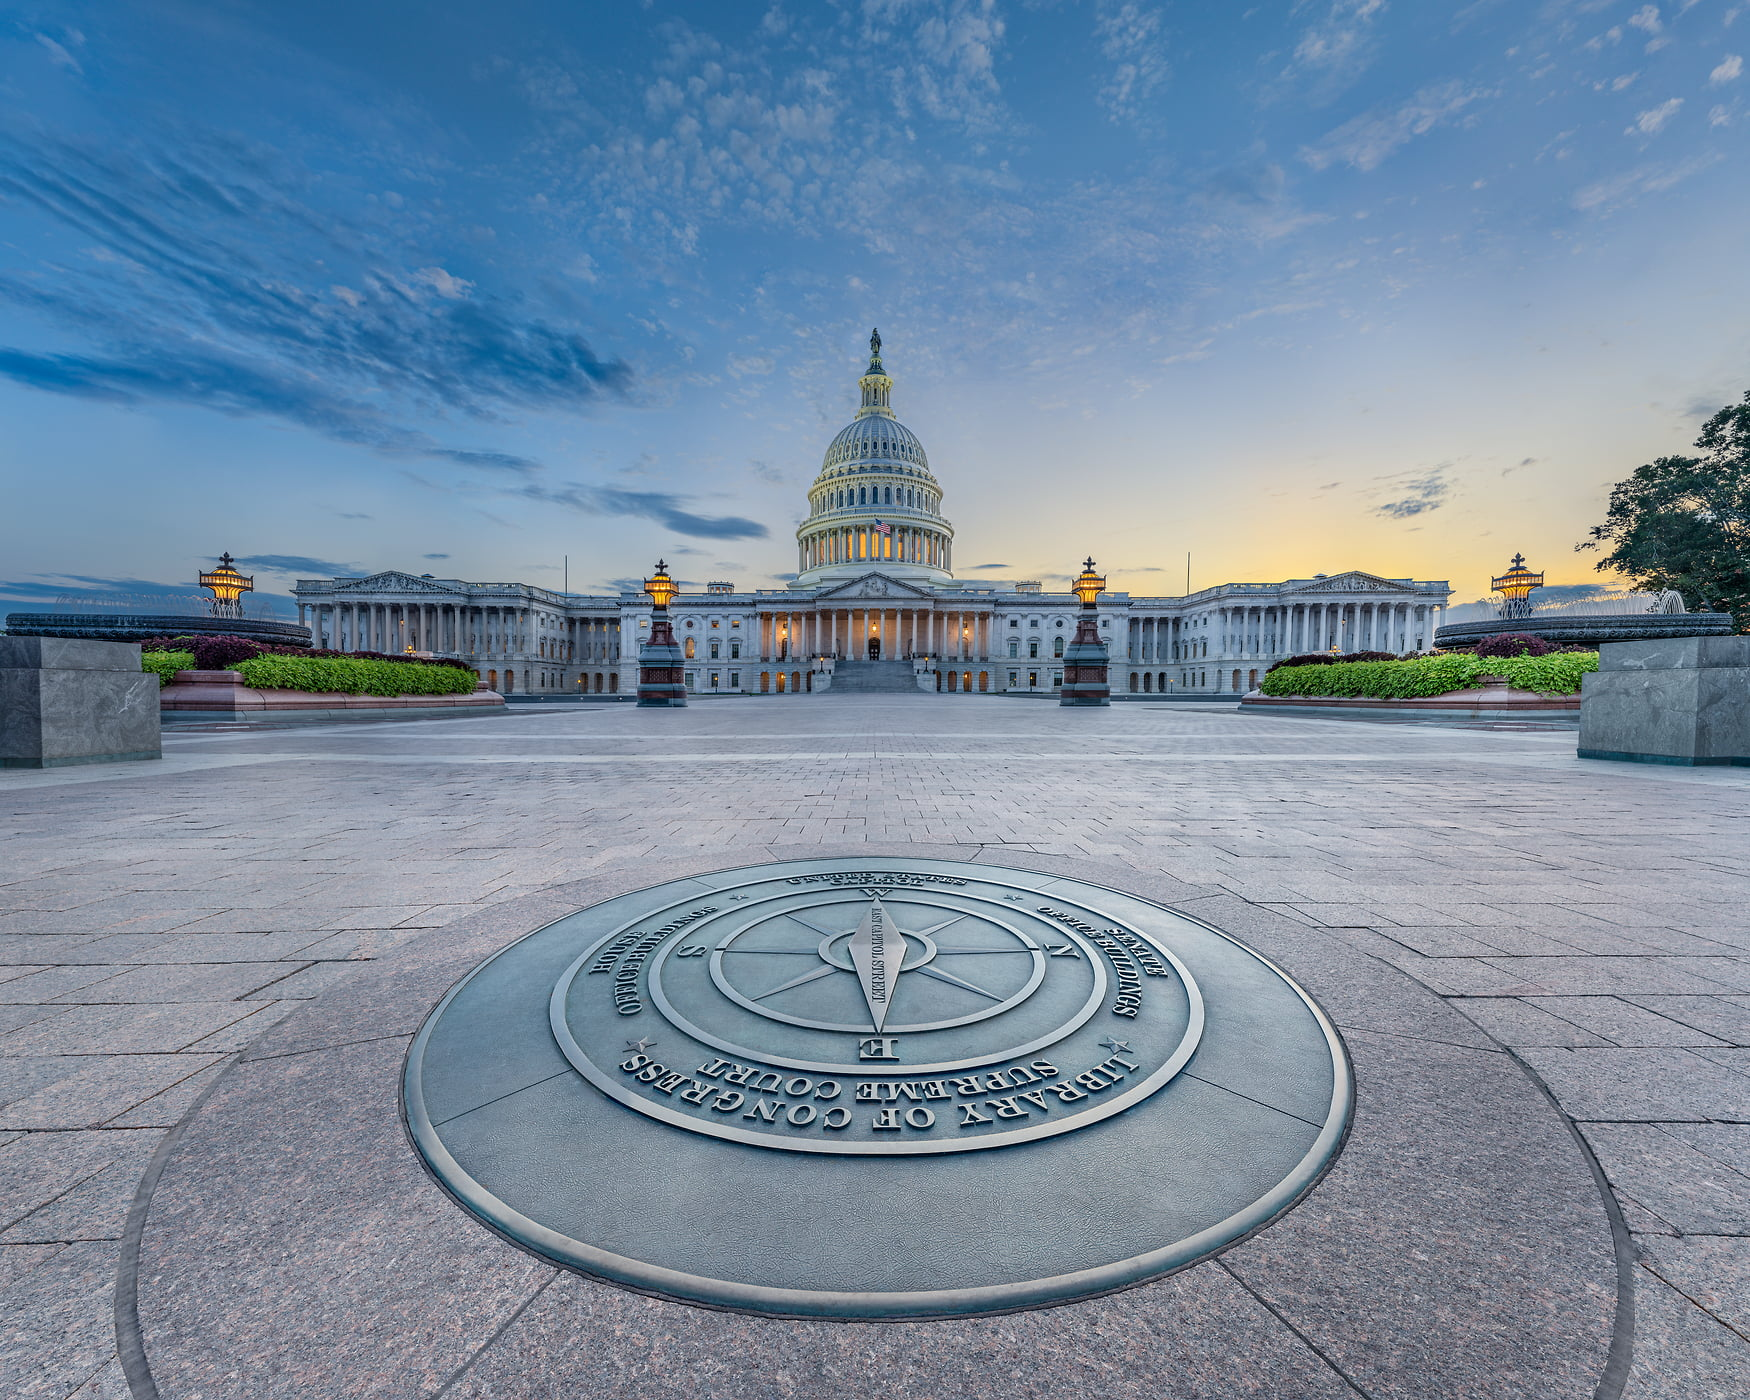 915 megapixels! A very high resolution, large-format VAST photo print of the USA Capitol Building and Compass; photograph created by Tim Lo Monaco at the United States Capitol in Washington, D.C., USA